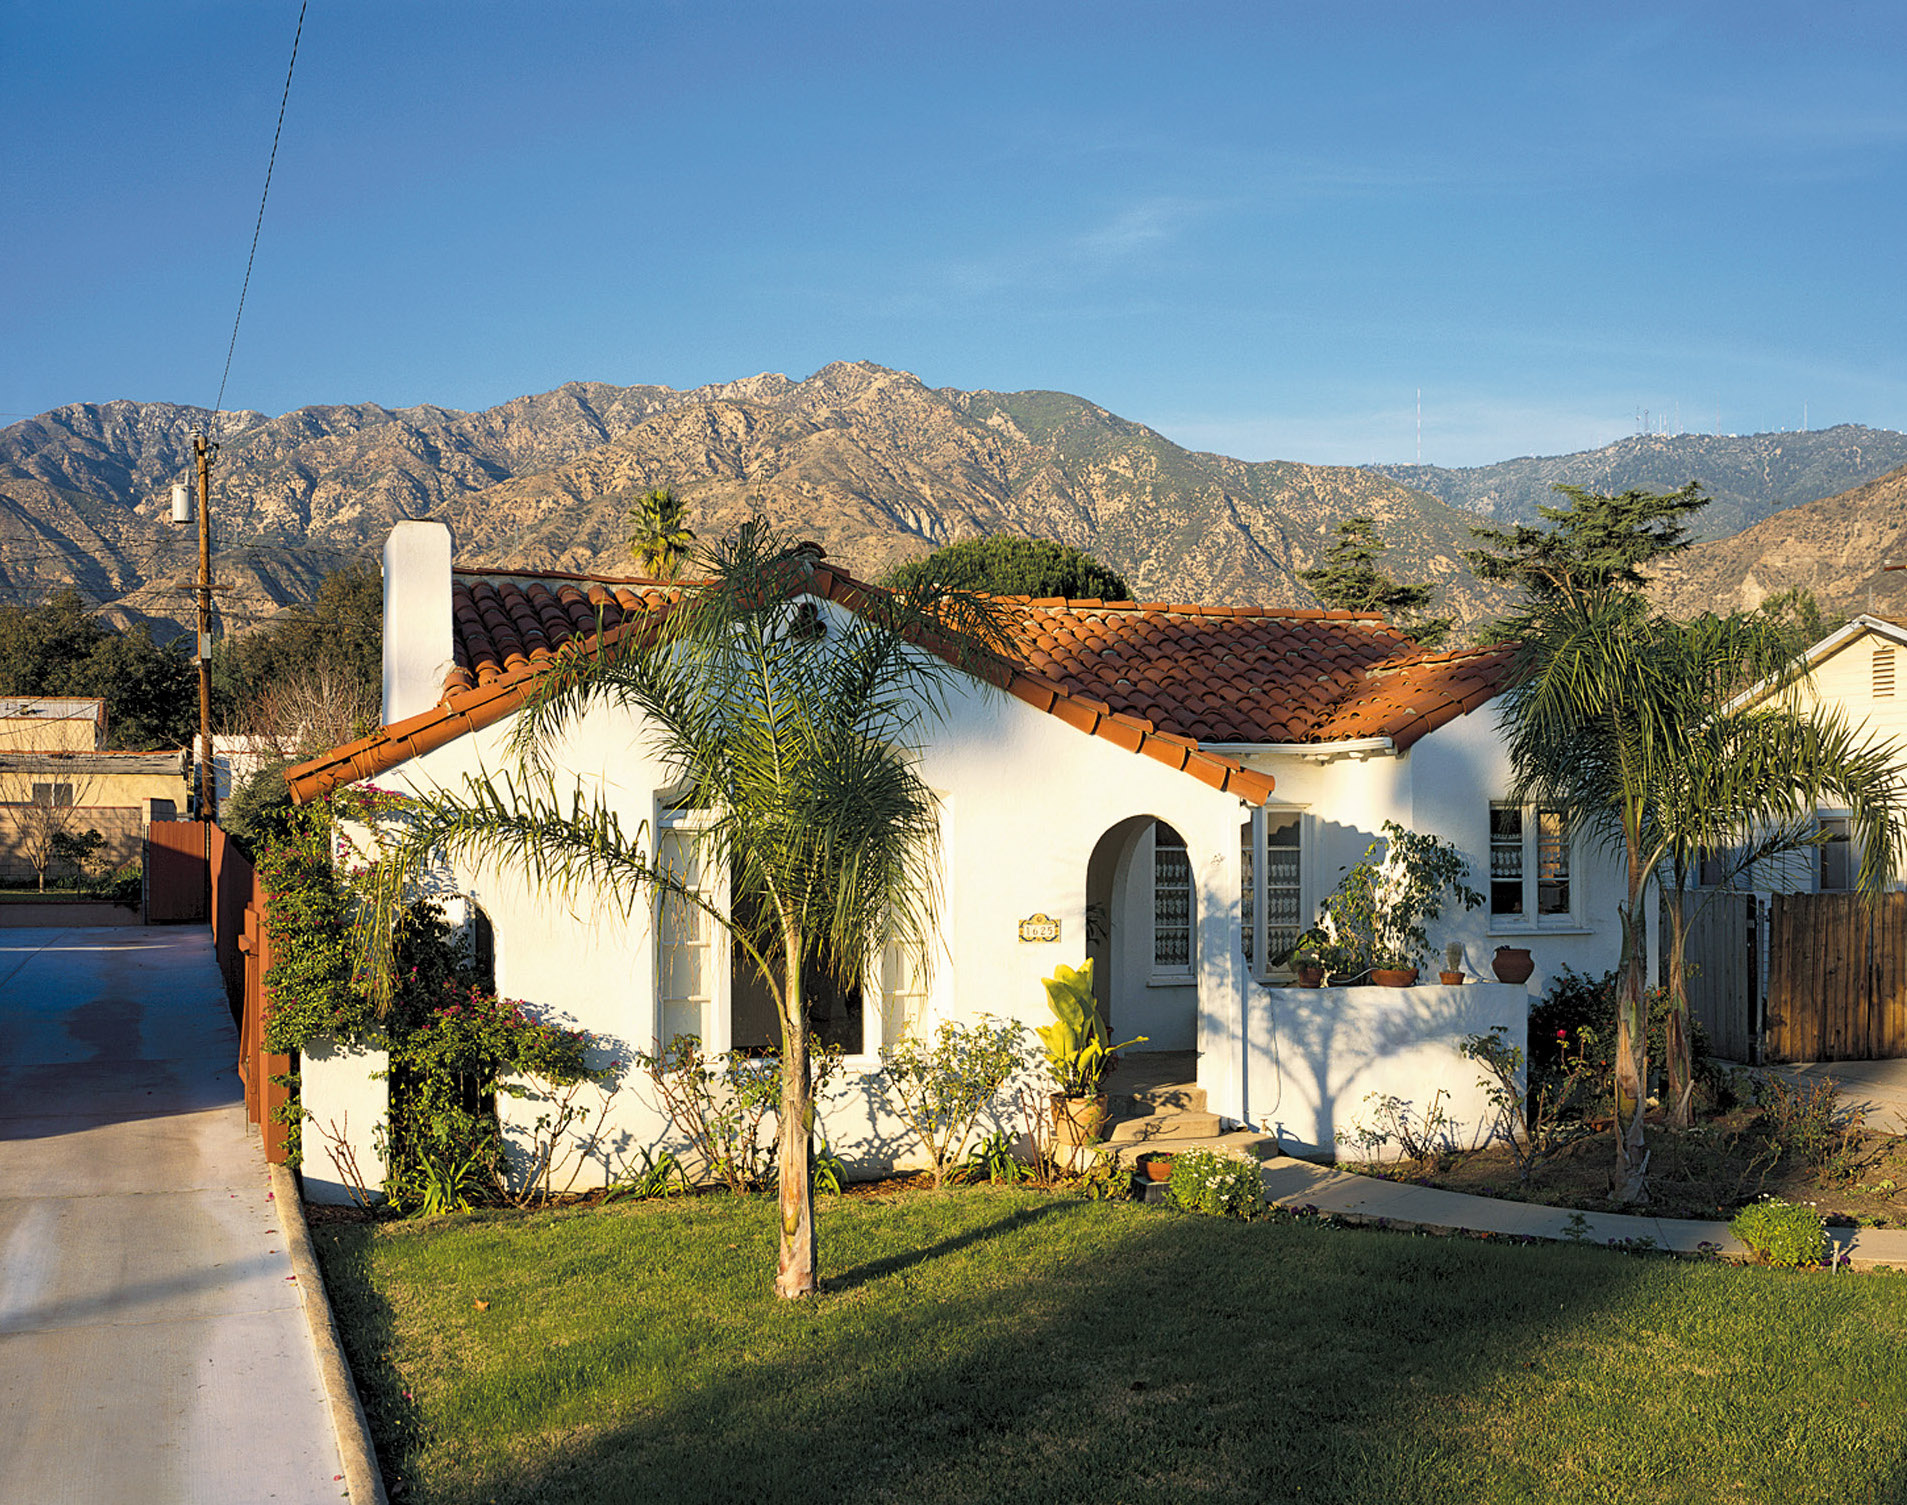 Spanish Mission bungalow